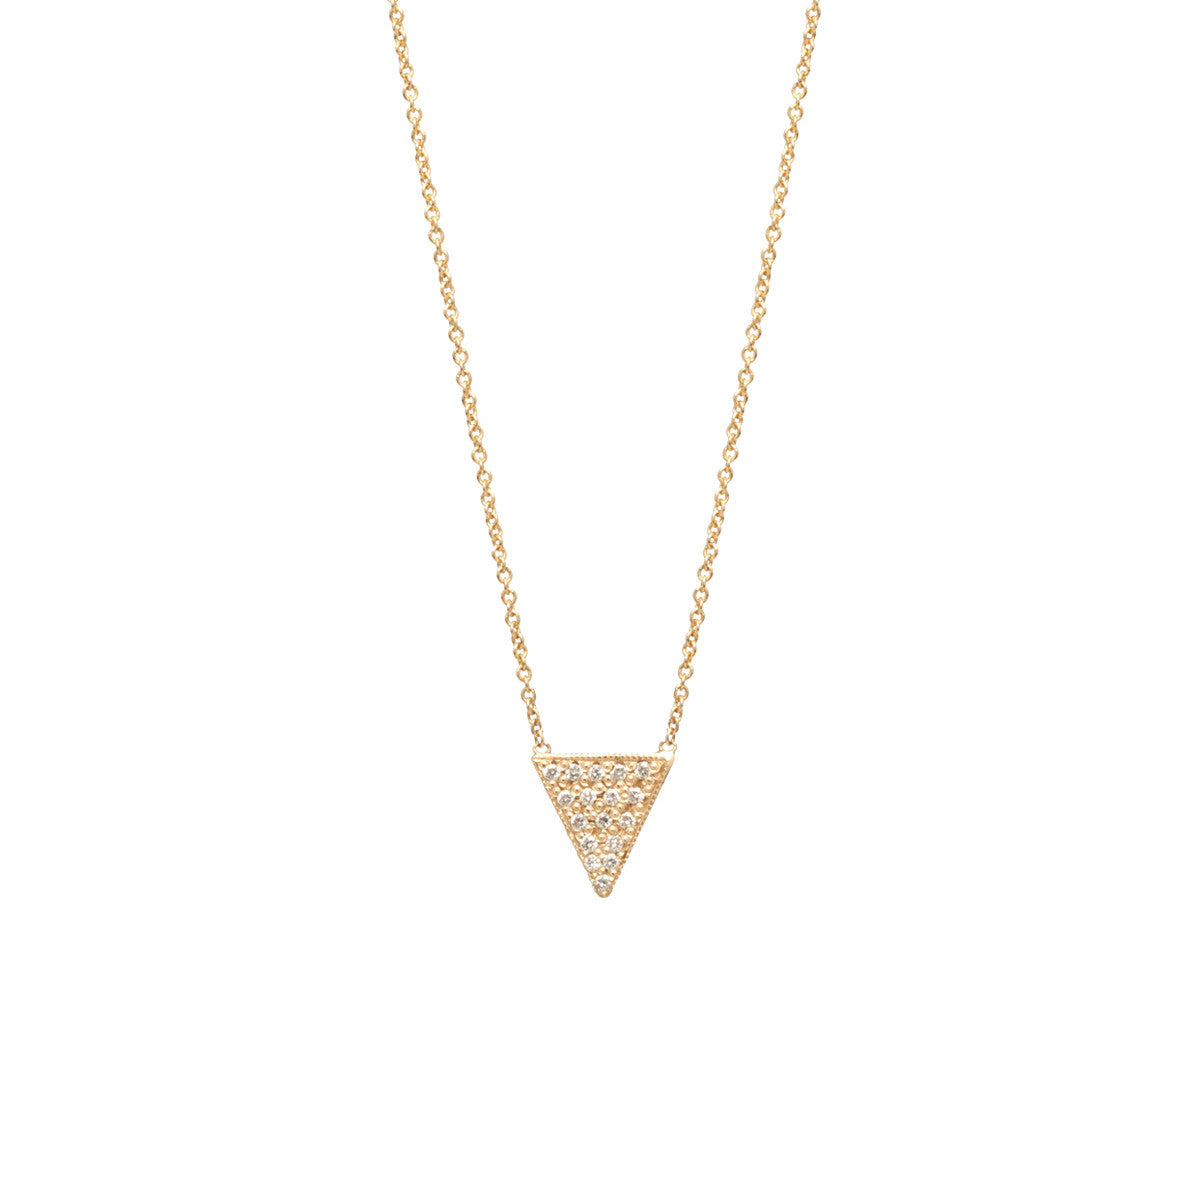 14k pave small triangle necklace